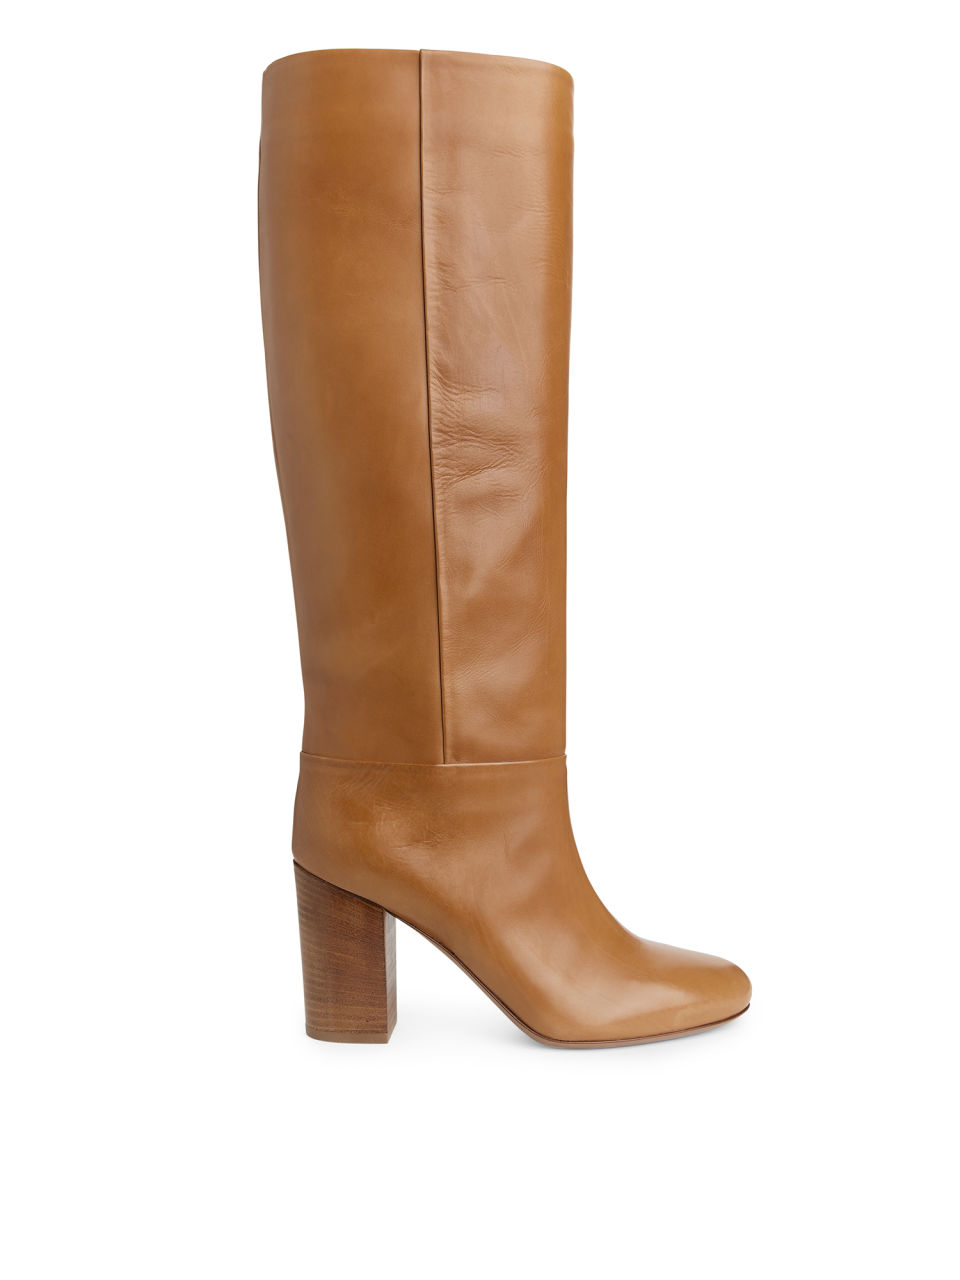 Front image of Arket high-heel leather boots in orange